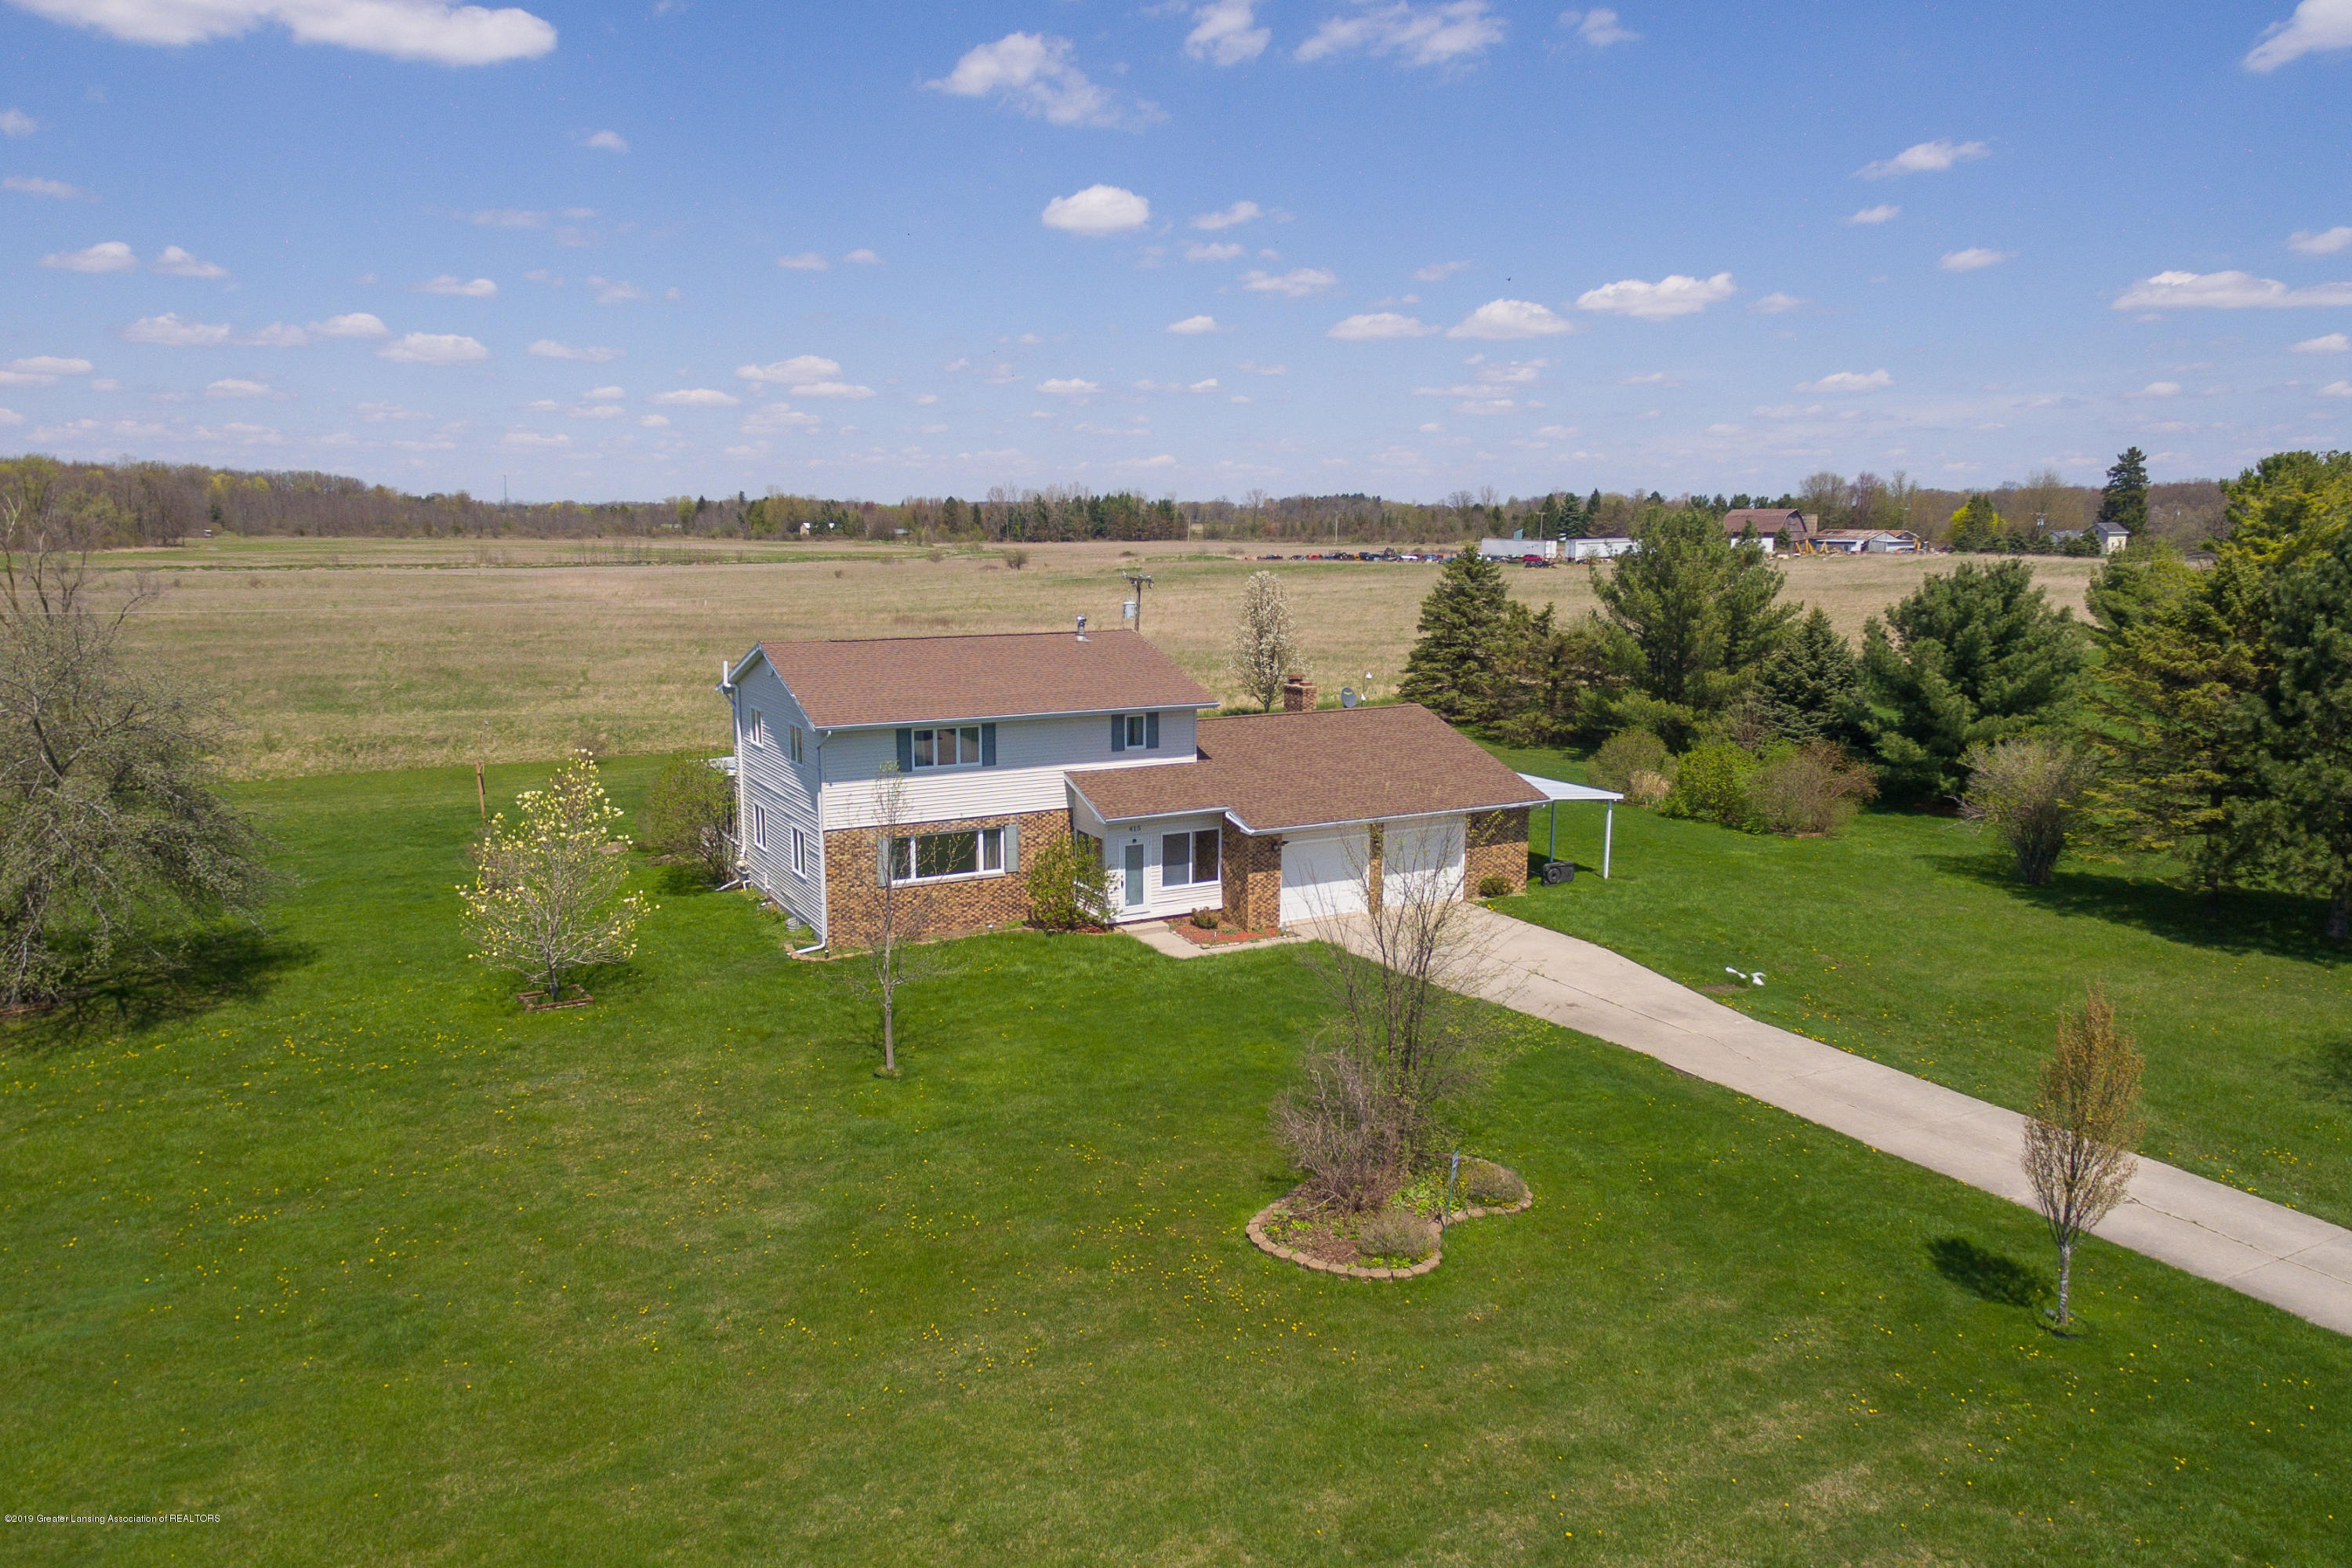 415 Holt Rd - Country setting - 2